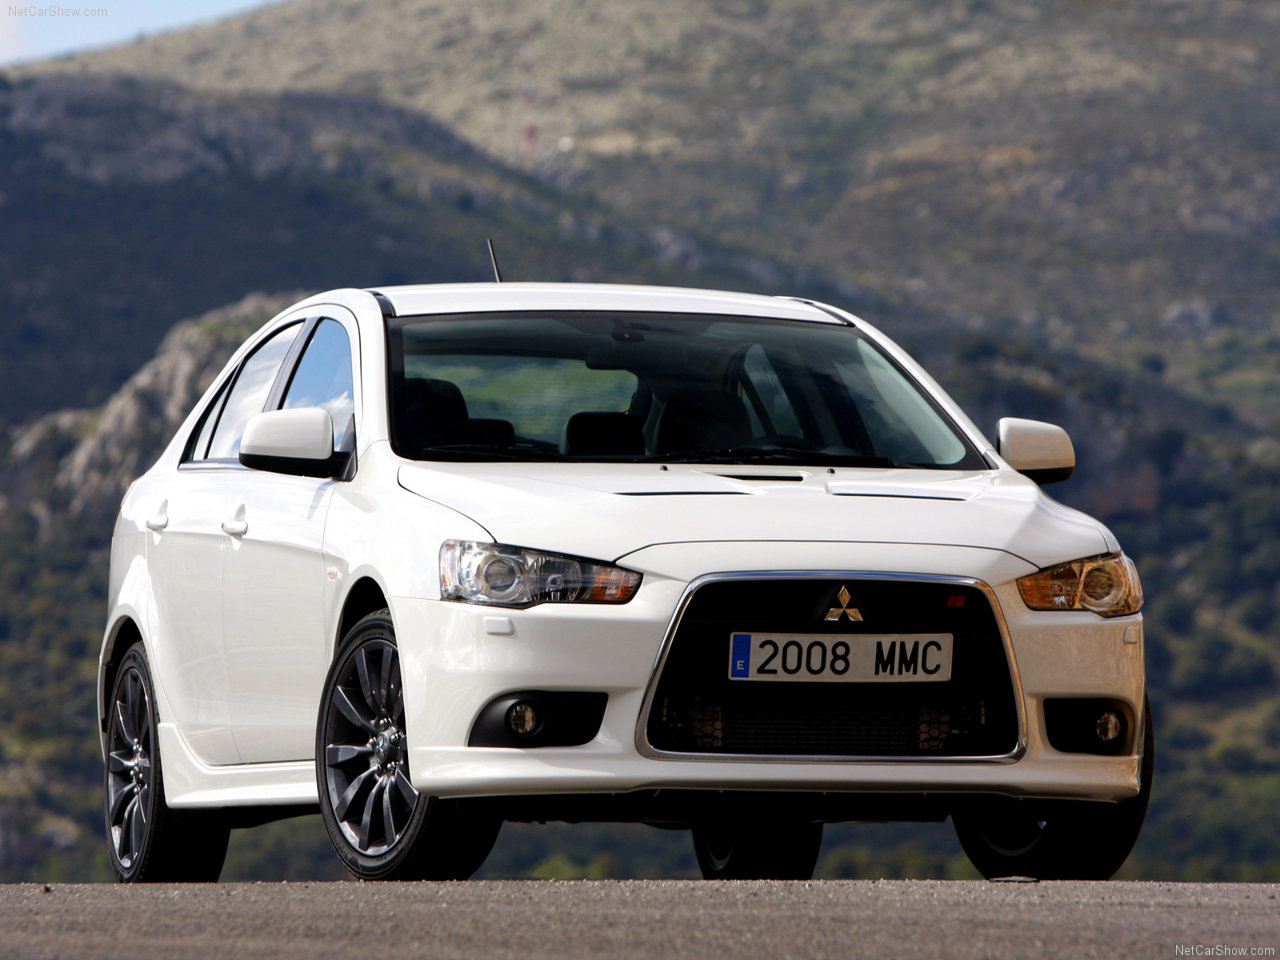 Mitsubishi Lancer Sportback Ralliart Front Side photo Cars and Pictures Wallpapers Download